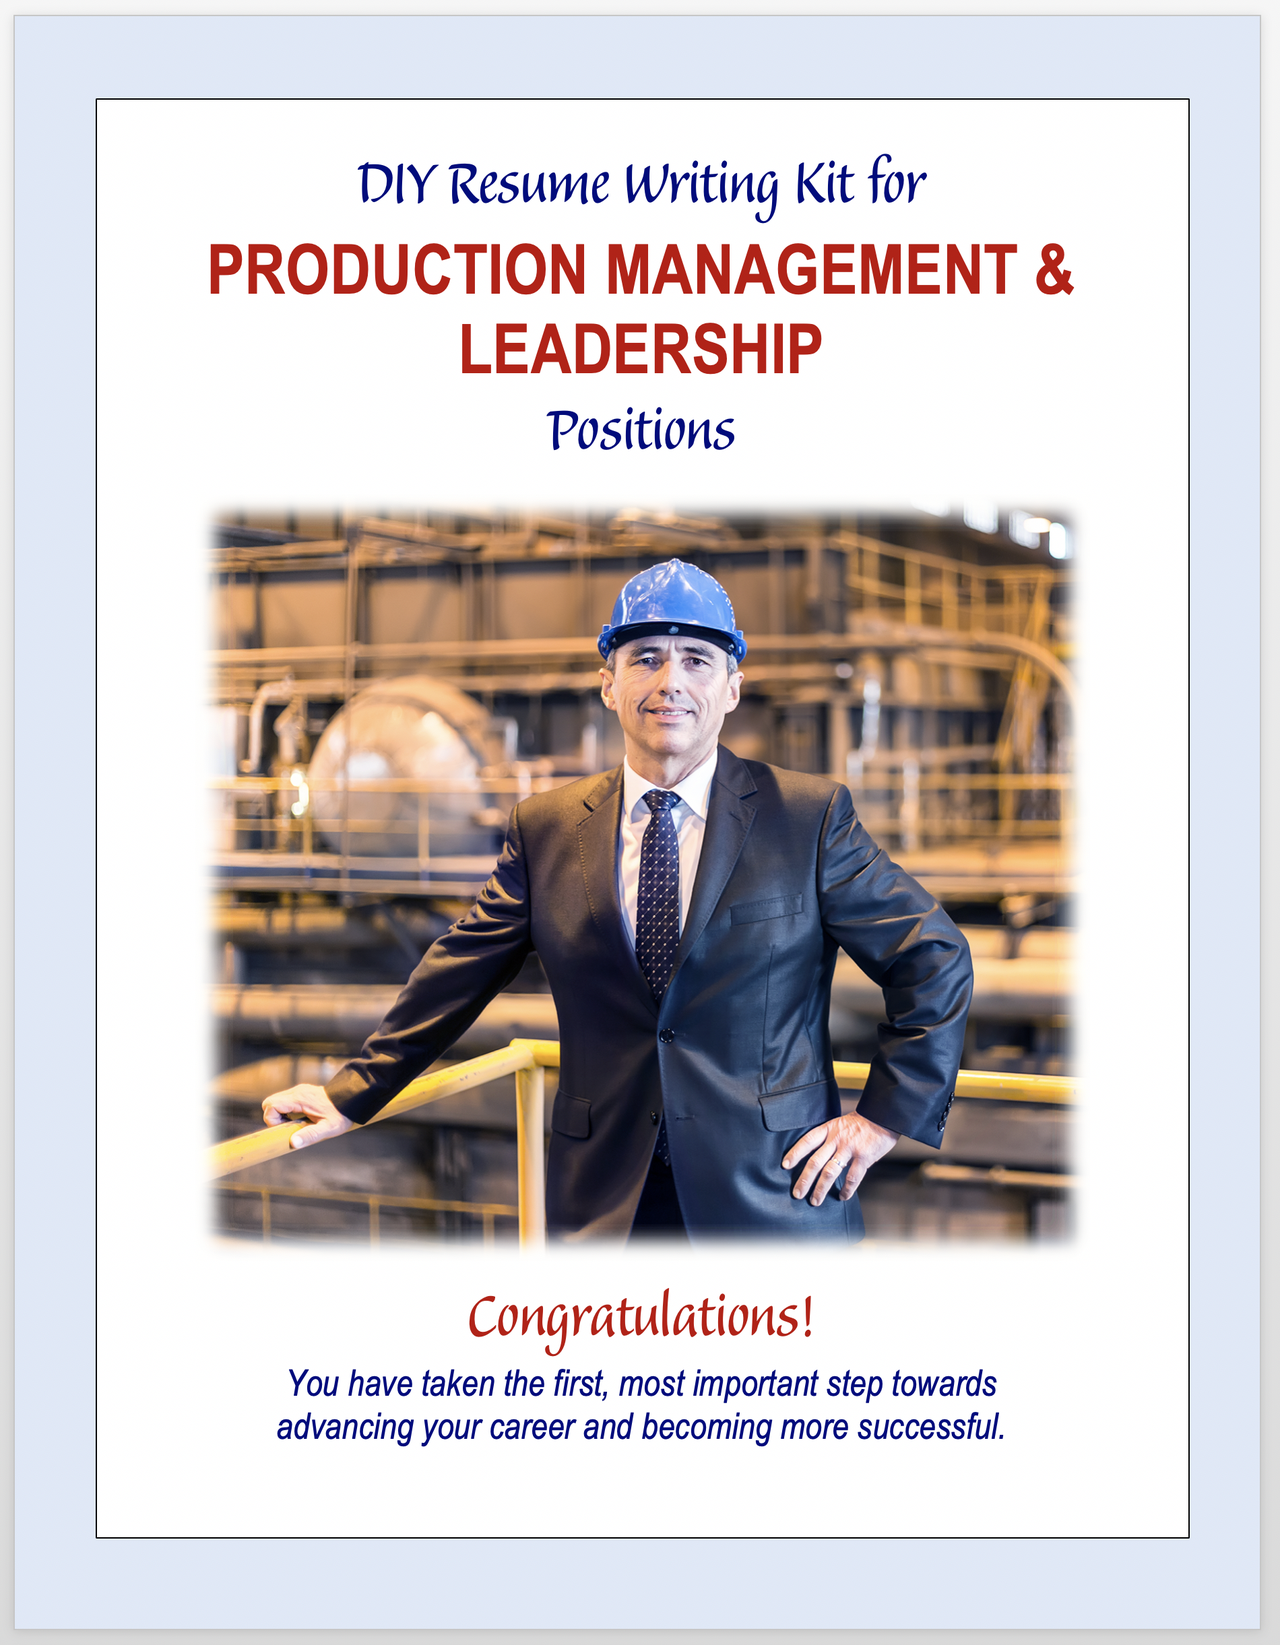 production management & leadership.png